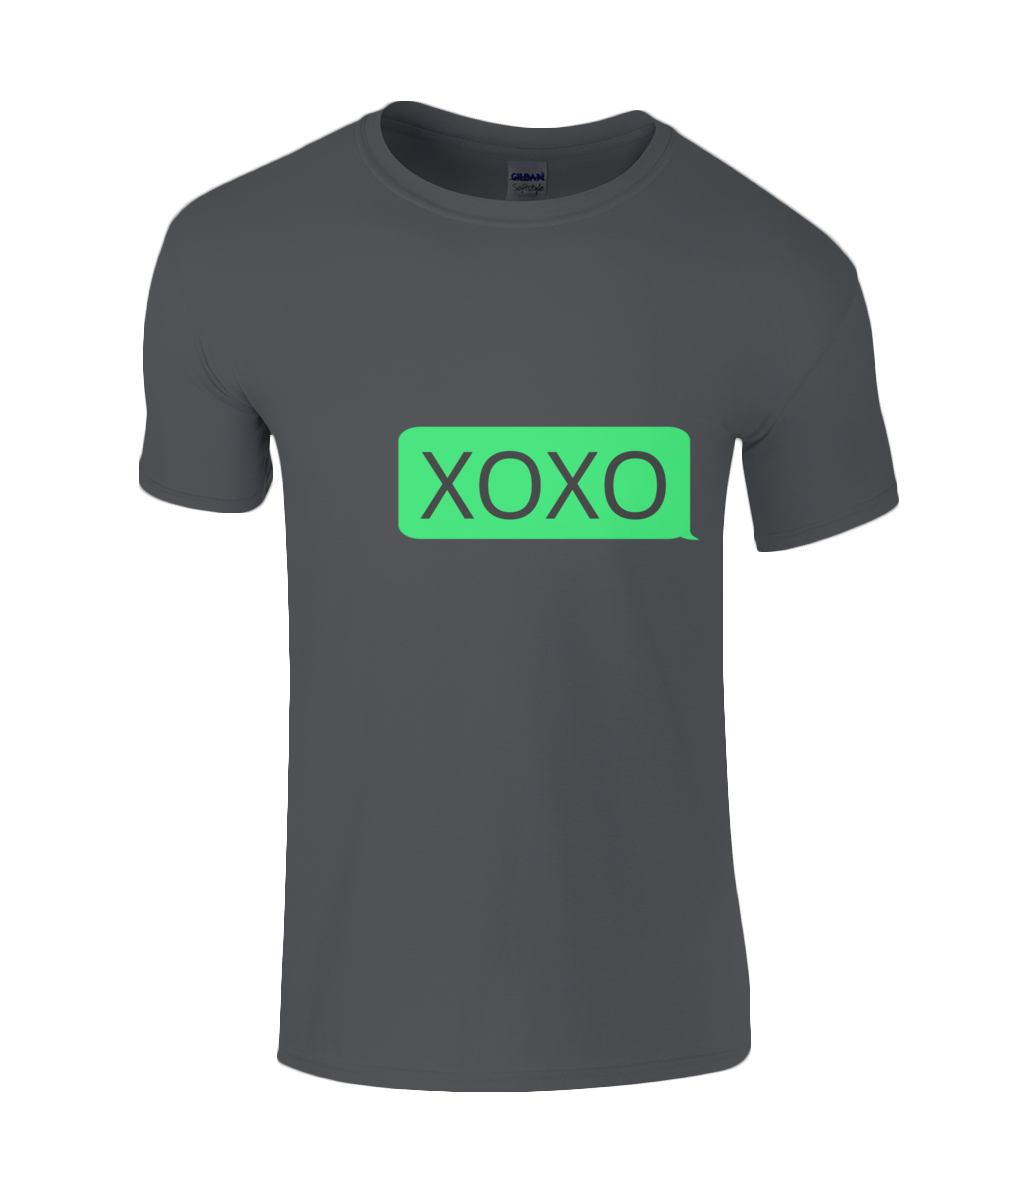 xoxo - youth's t-shirt